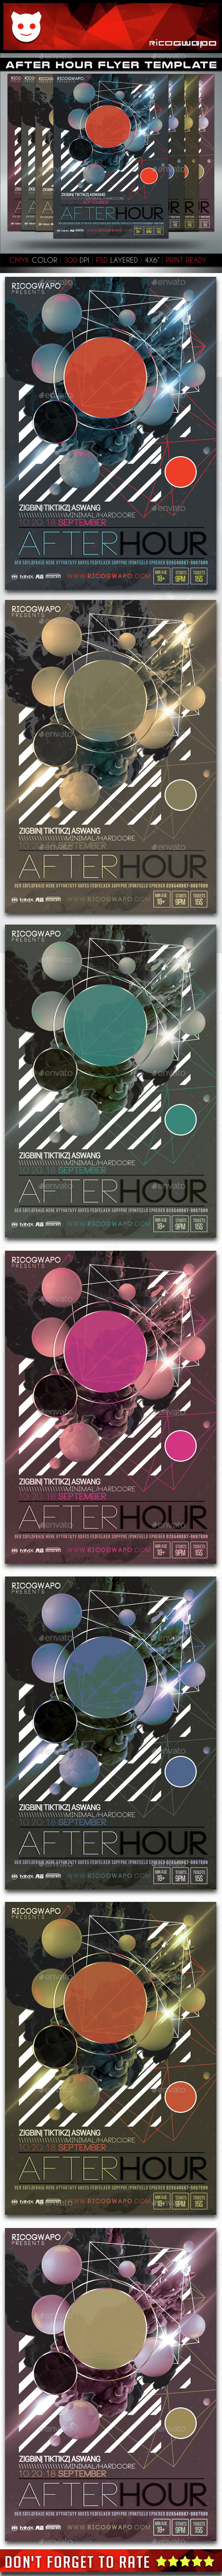 After Hour Flyer Template - Clubs & Parties Events